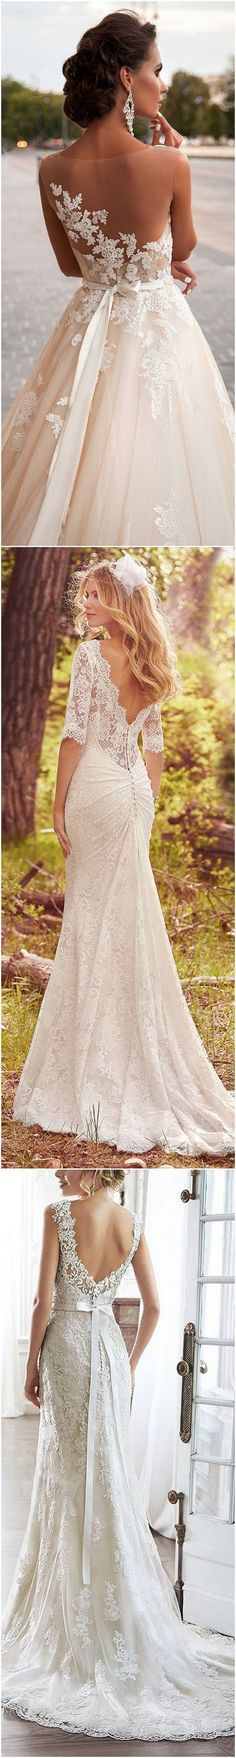 vintage low back lace wedding dresses